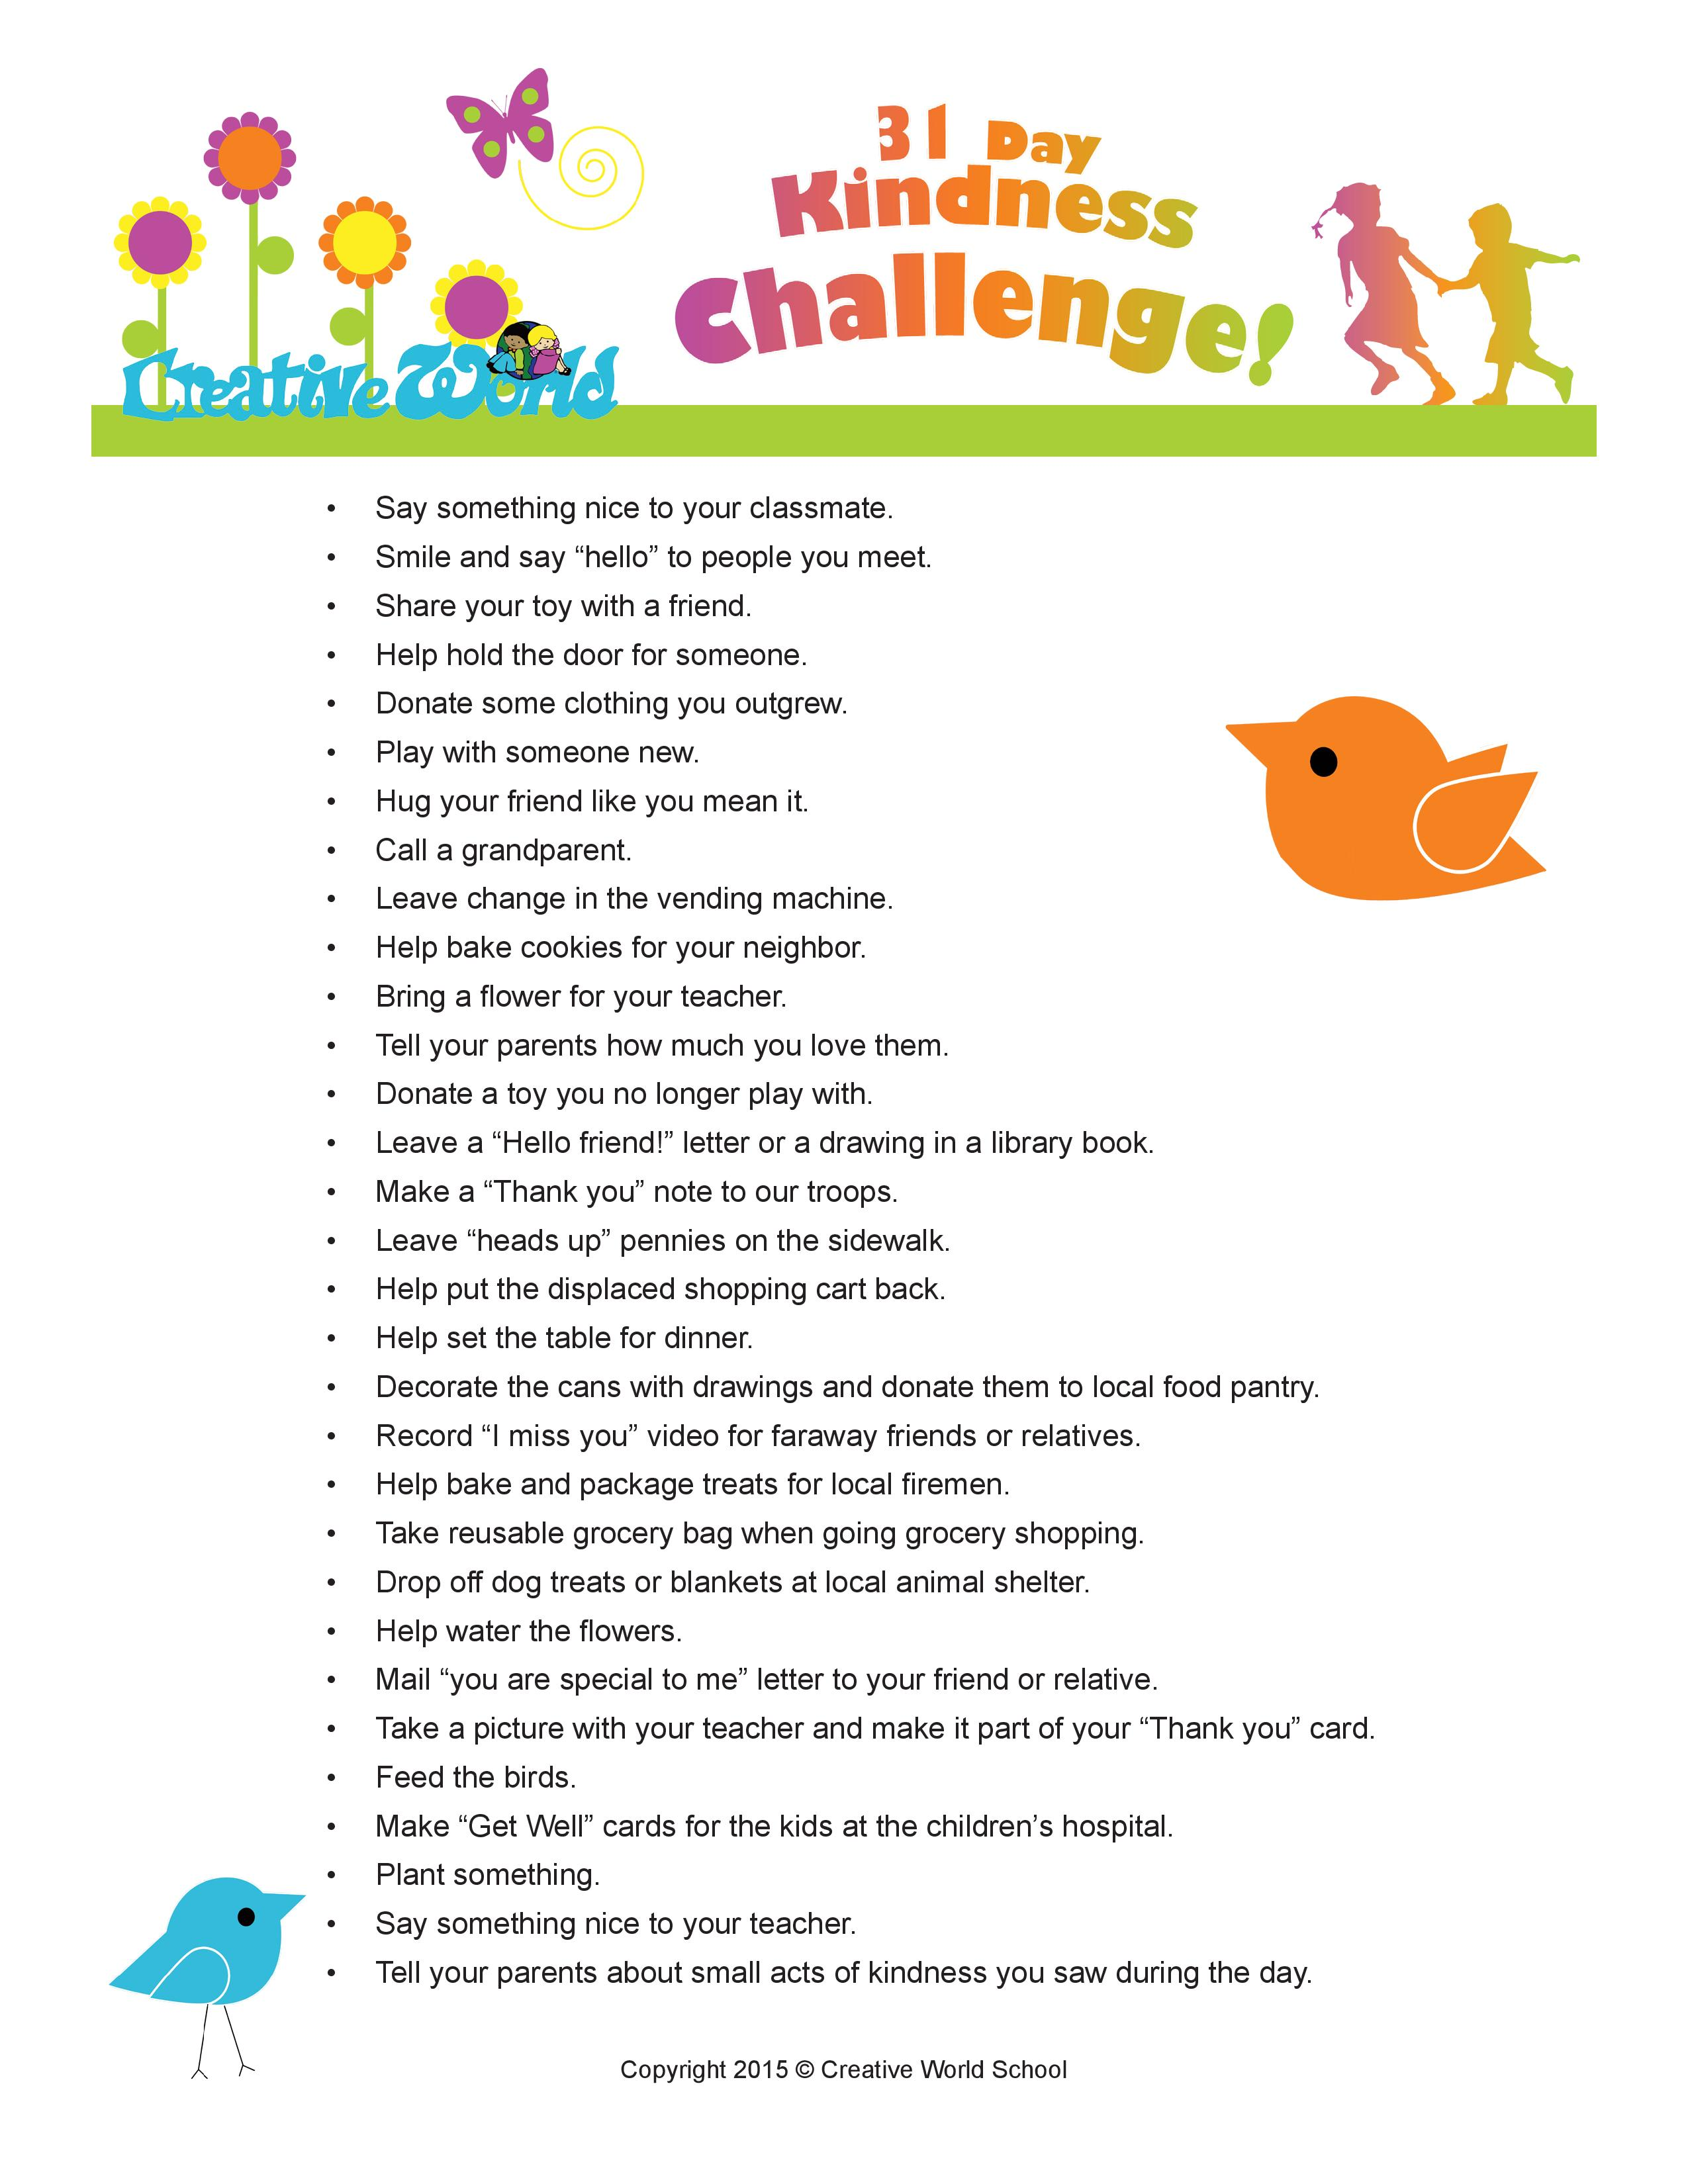 Teaching Children Kindness 31 Day Kindness Challenge